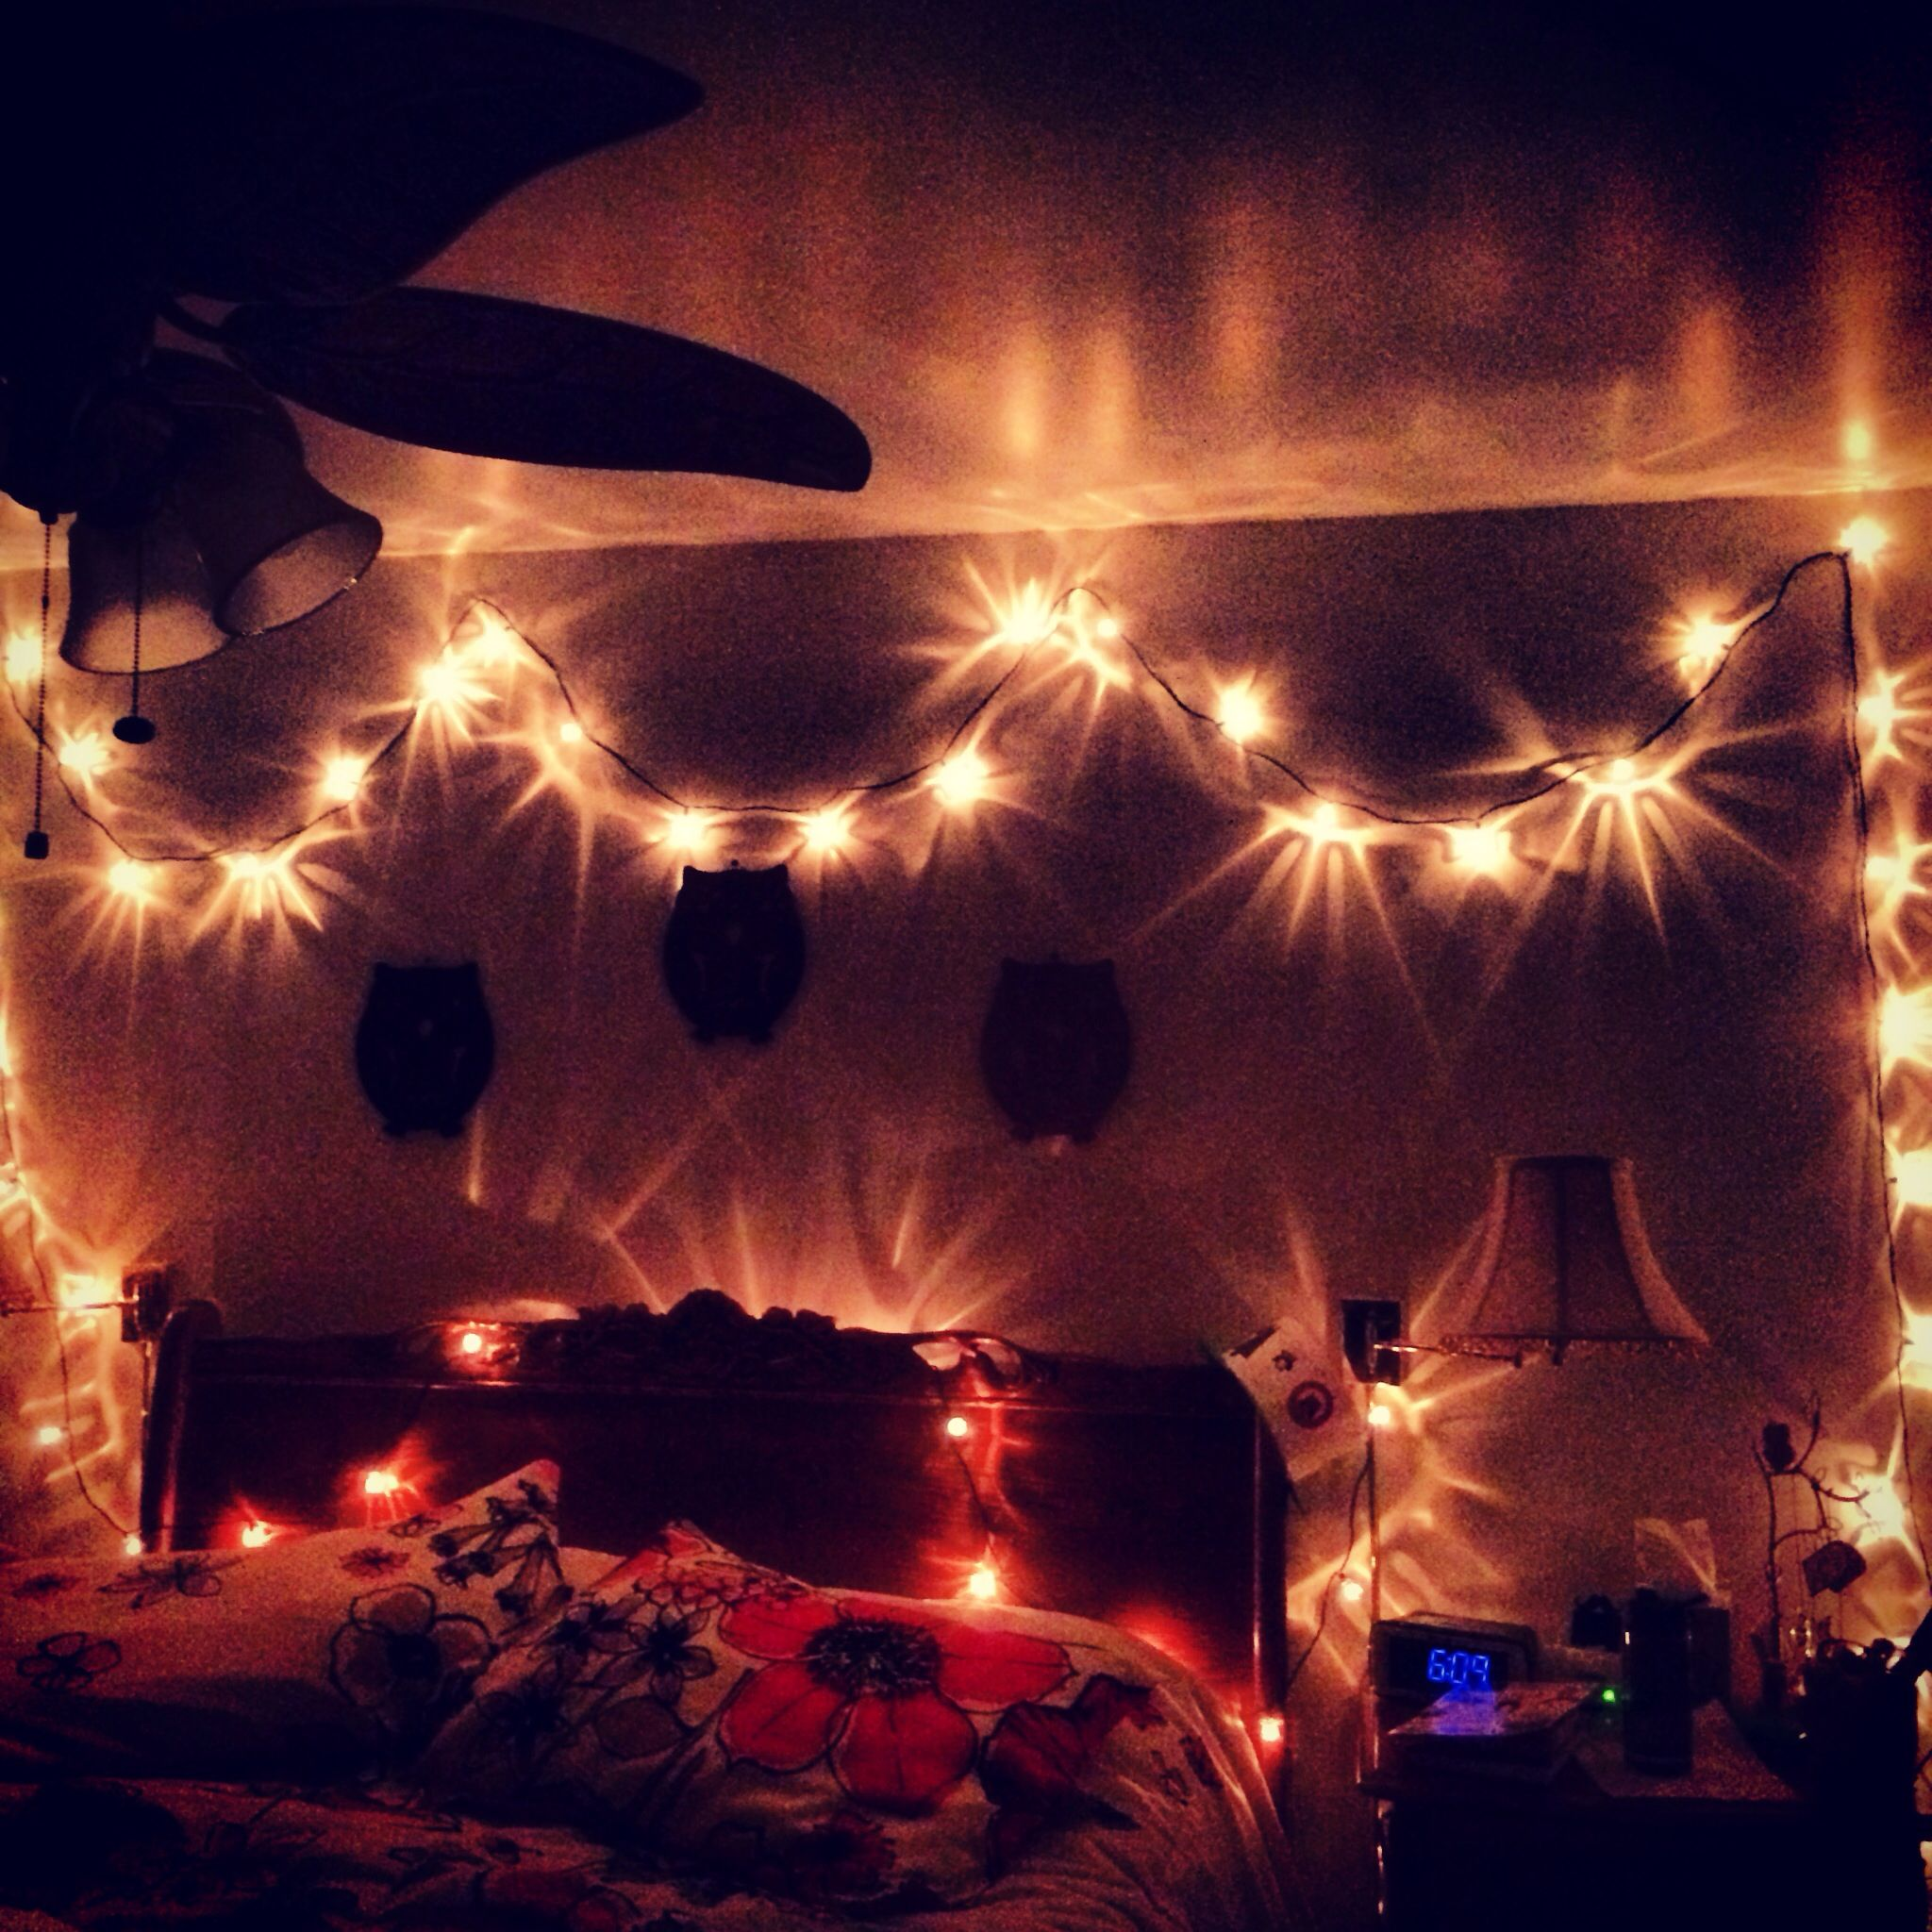 Bedroom Christmas Lights Diy Cool Ideas Diy Pinterest